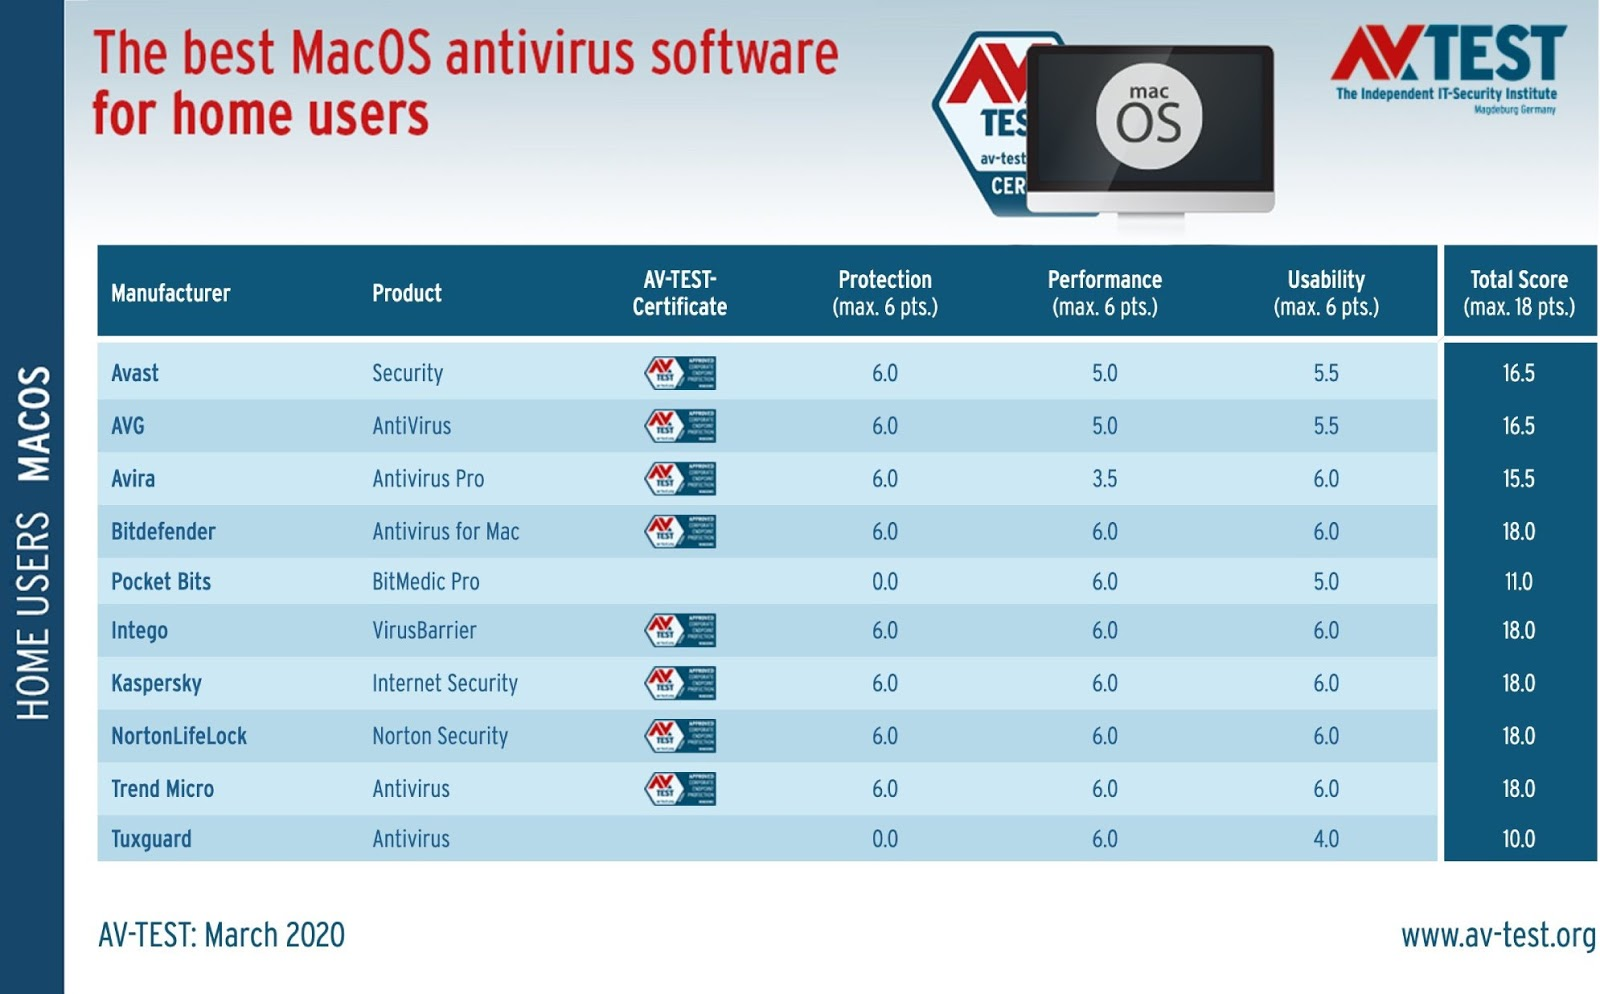 The best Mac antivirus software in 2020 for home users